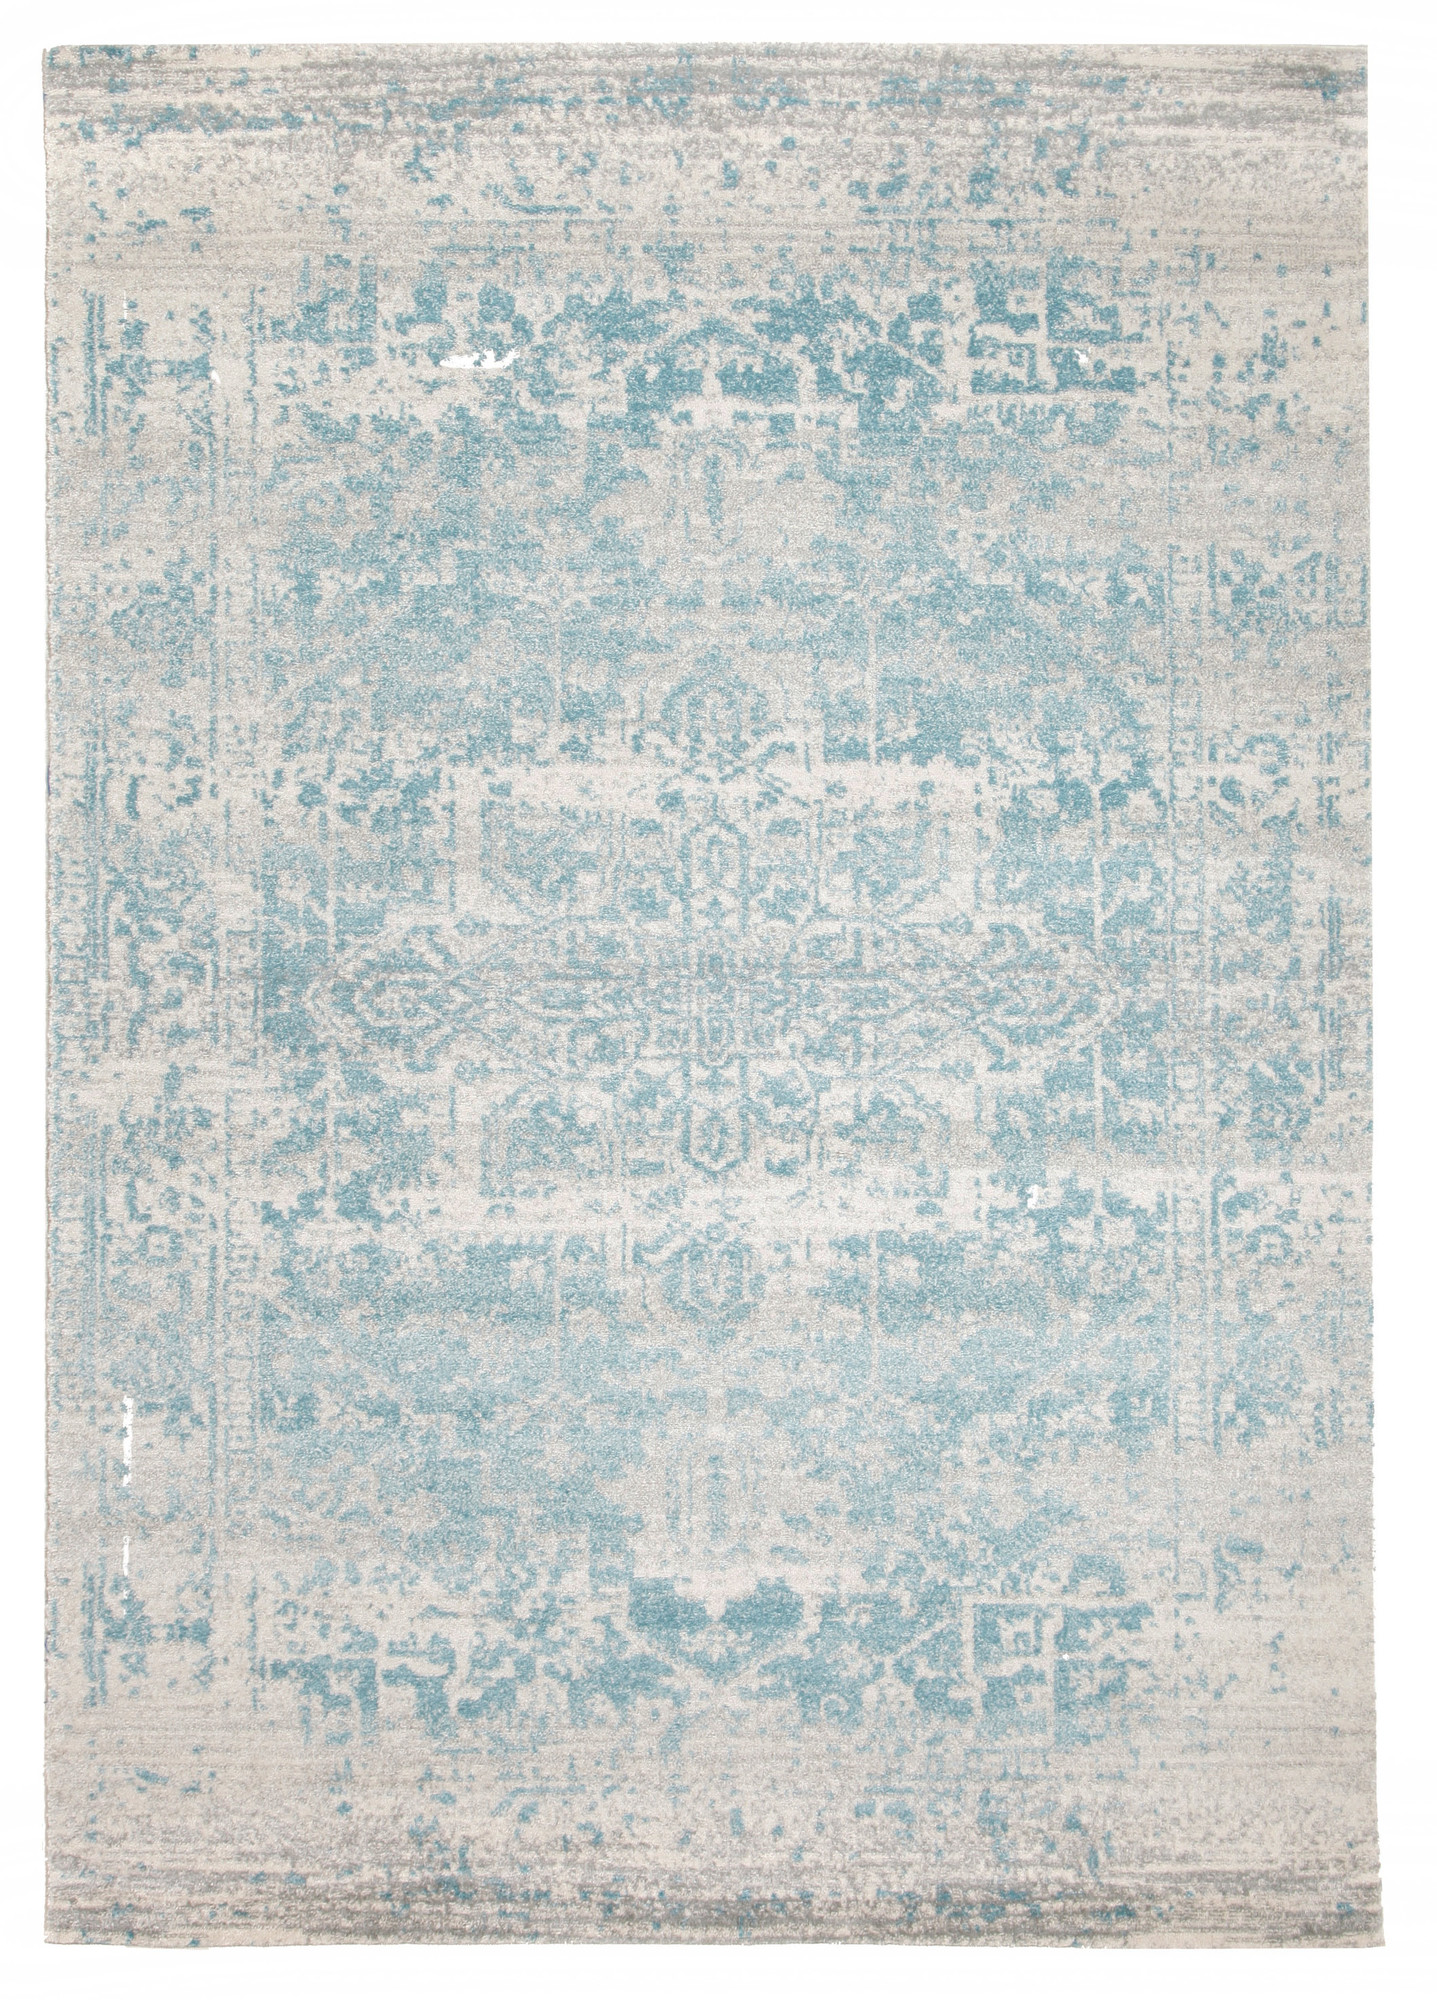 Popular 276 list blue and white rug for Blue and white area rugs